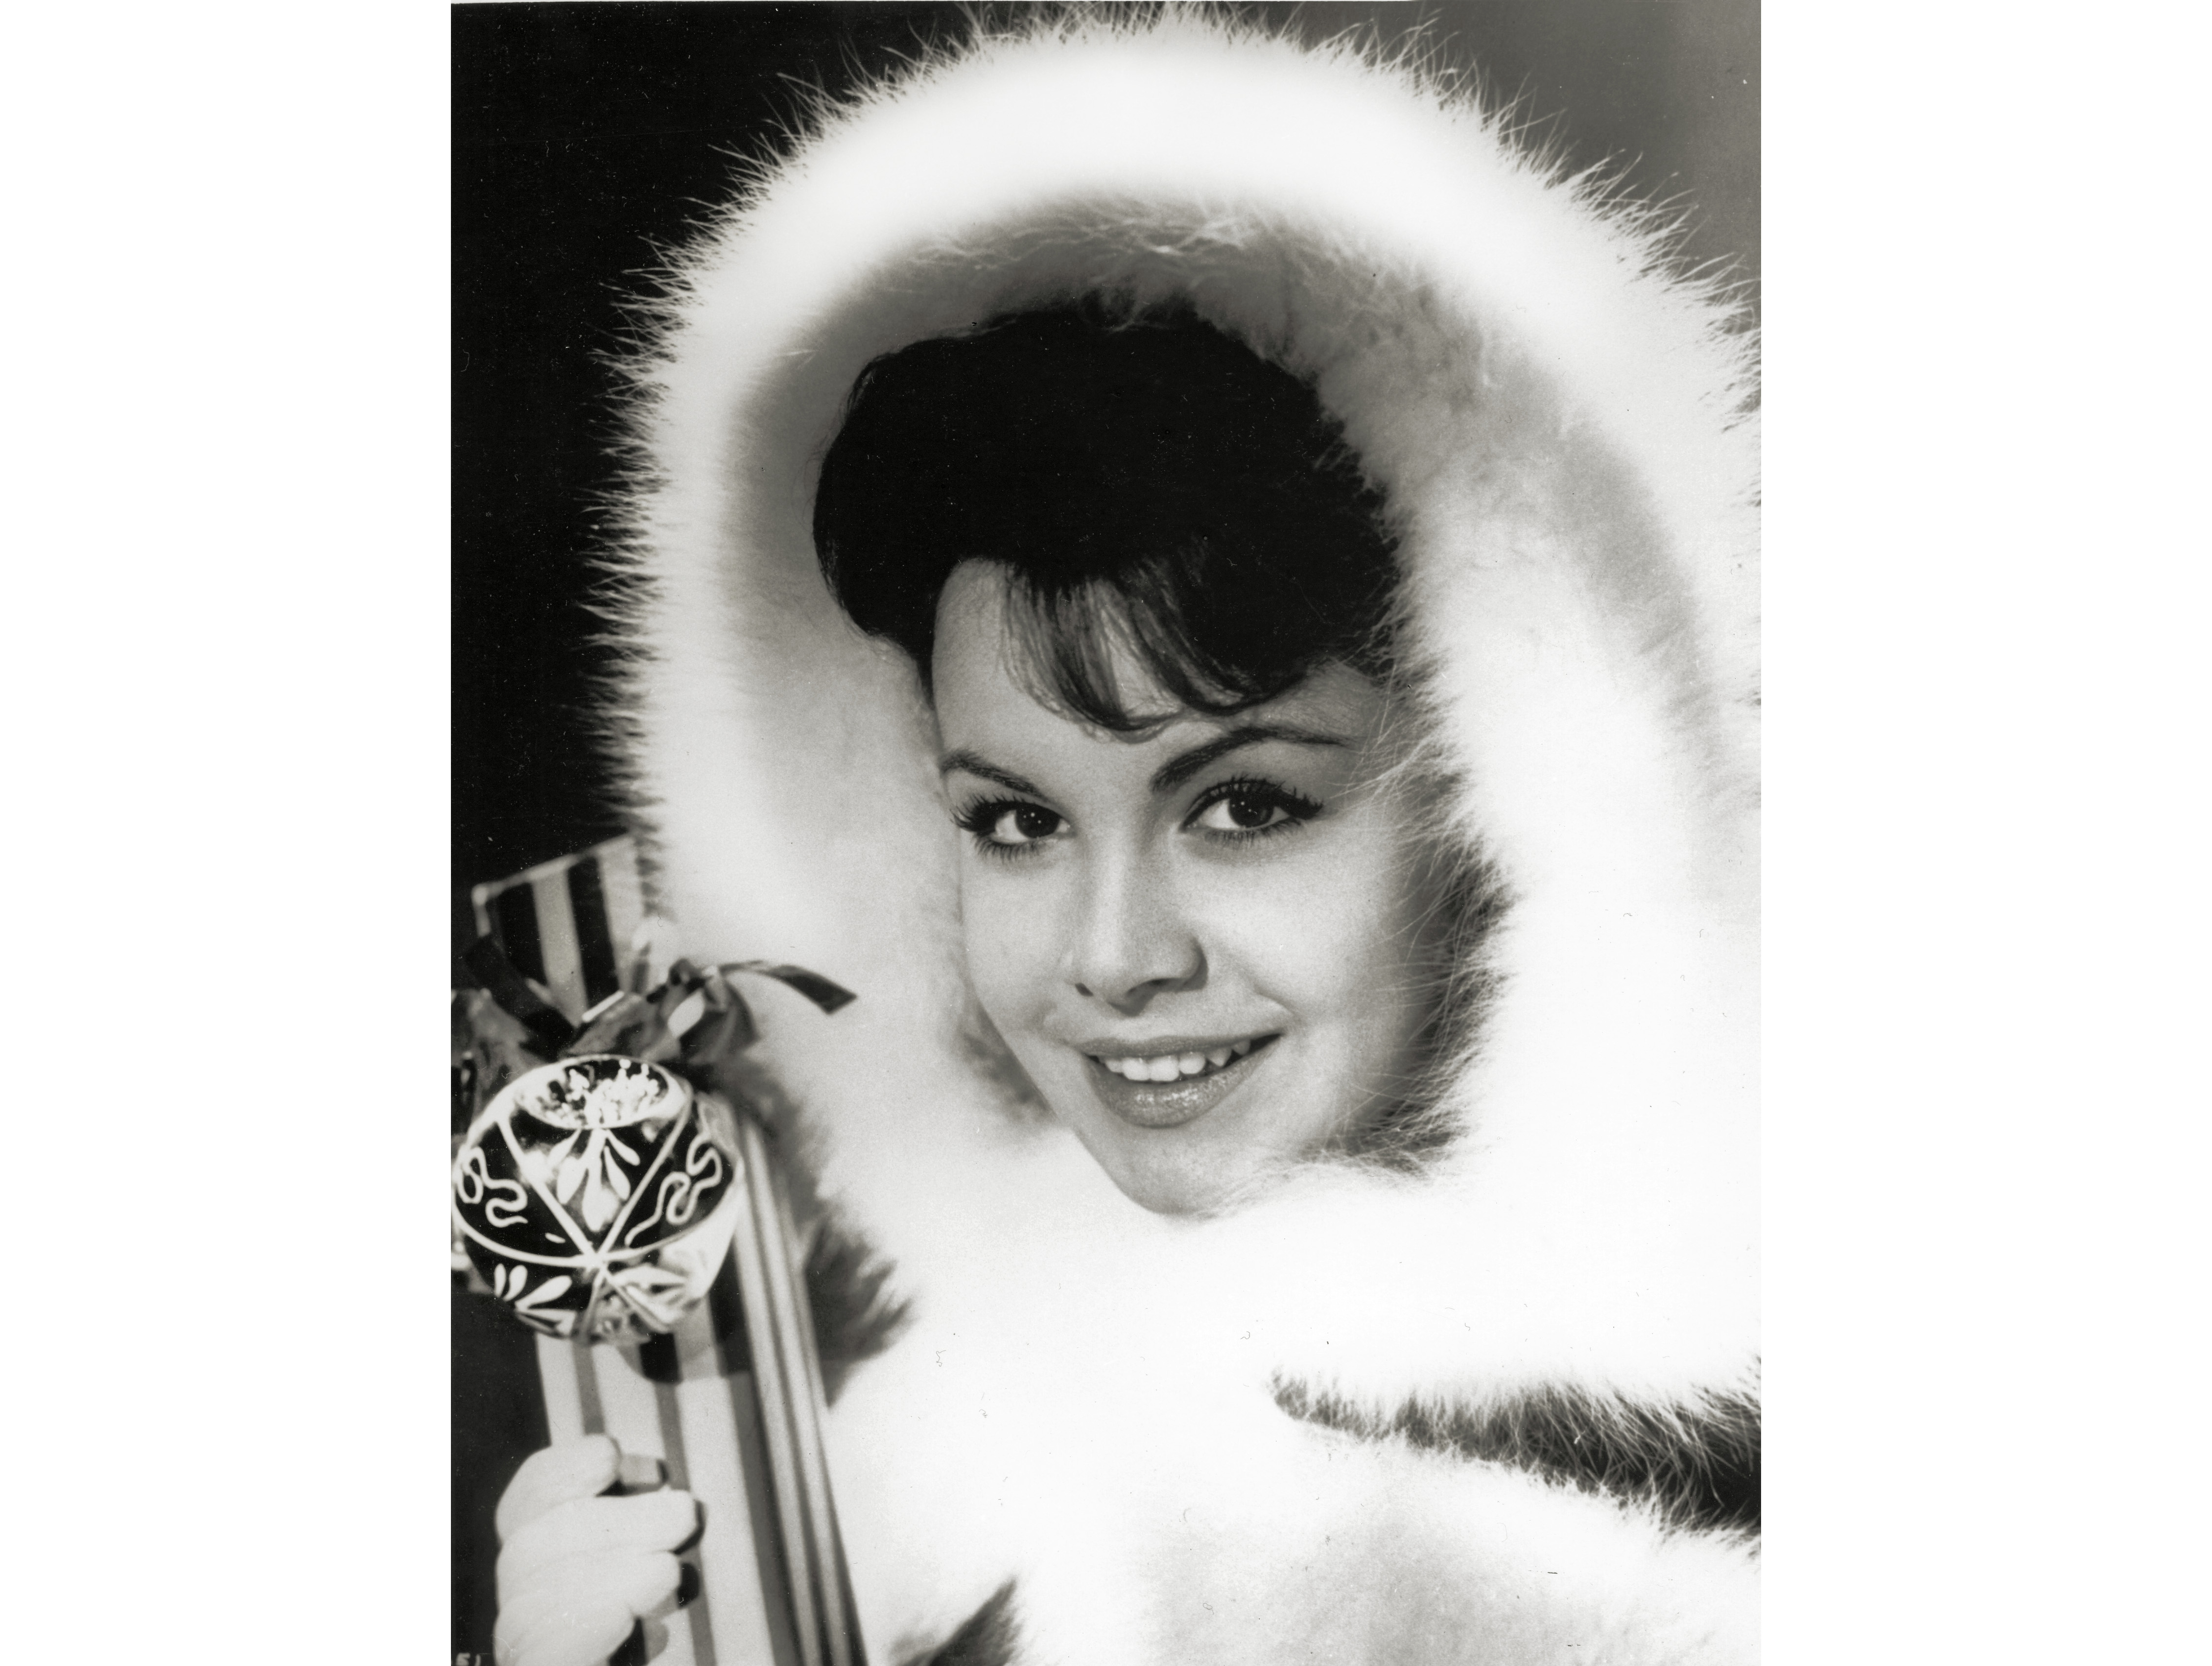 Perky, petite, 1960s American Sweetheart, Annette Funicello, bundles up for a romantic holiday season.